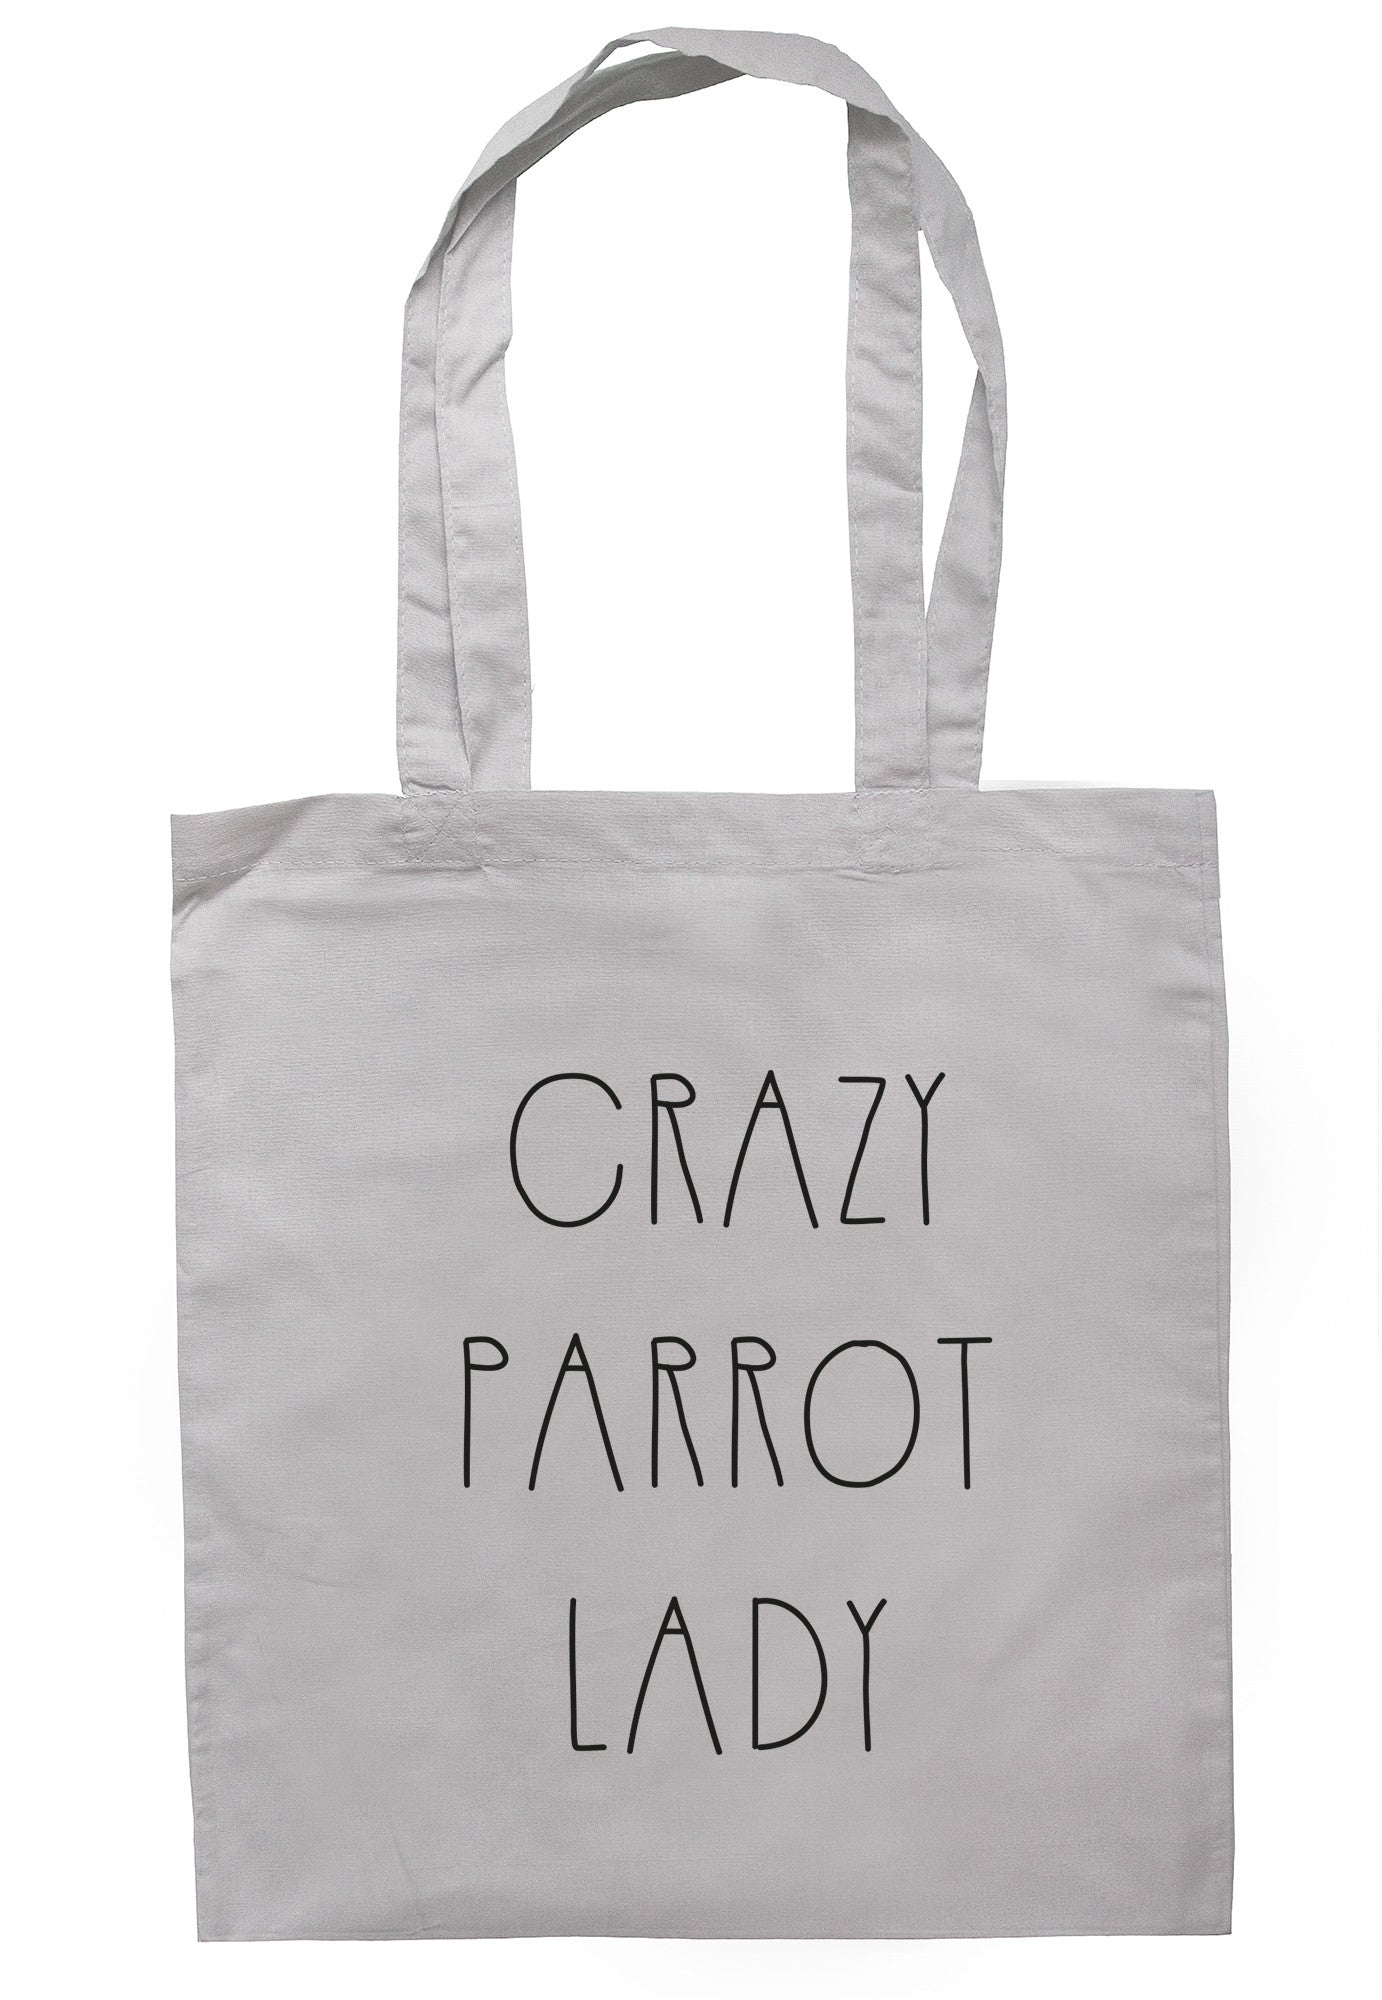 Crazy Parrot Lady Tote Bag TB0393 - Illustrated Identity Ltd.